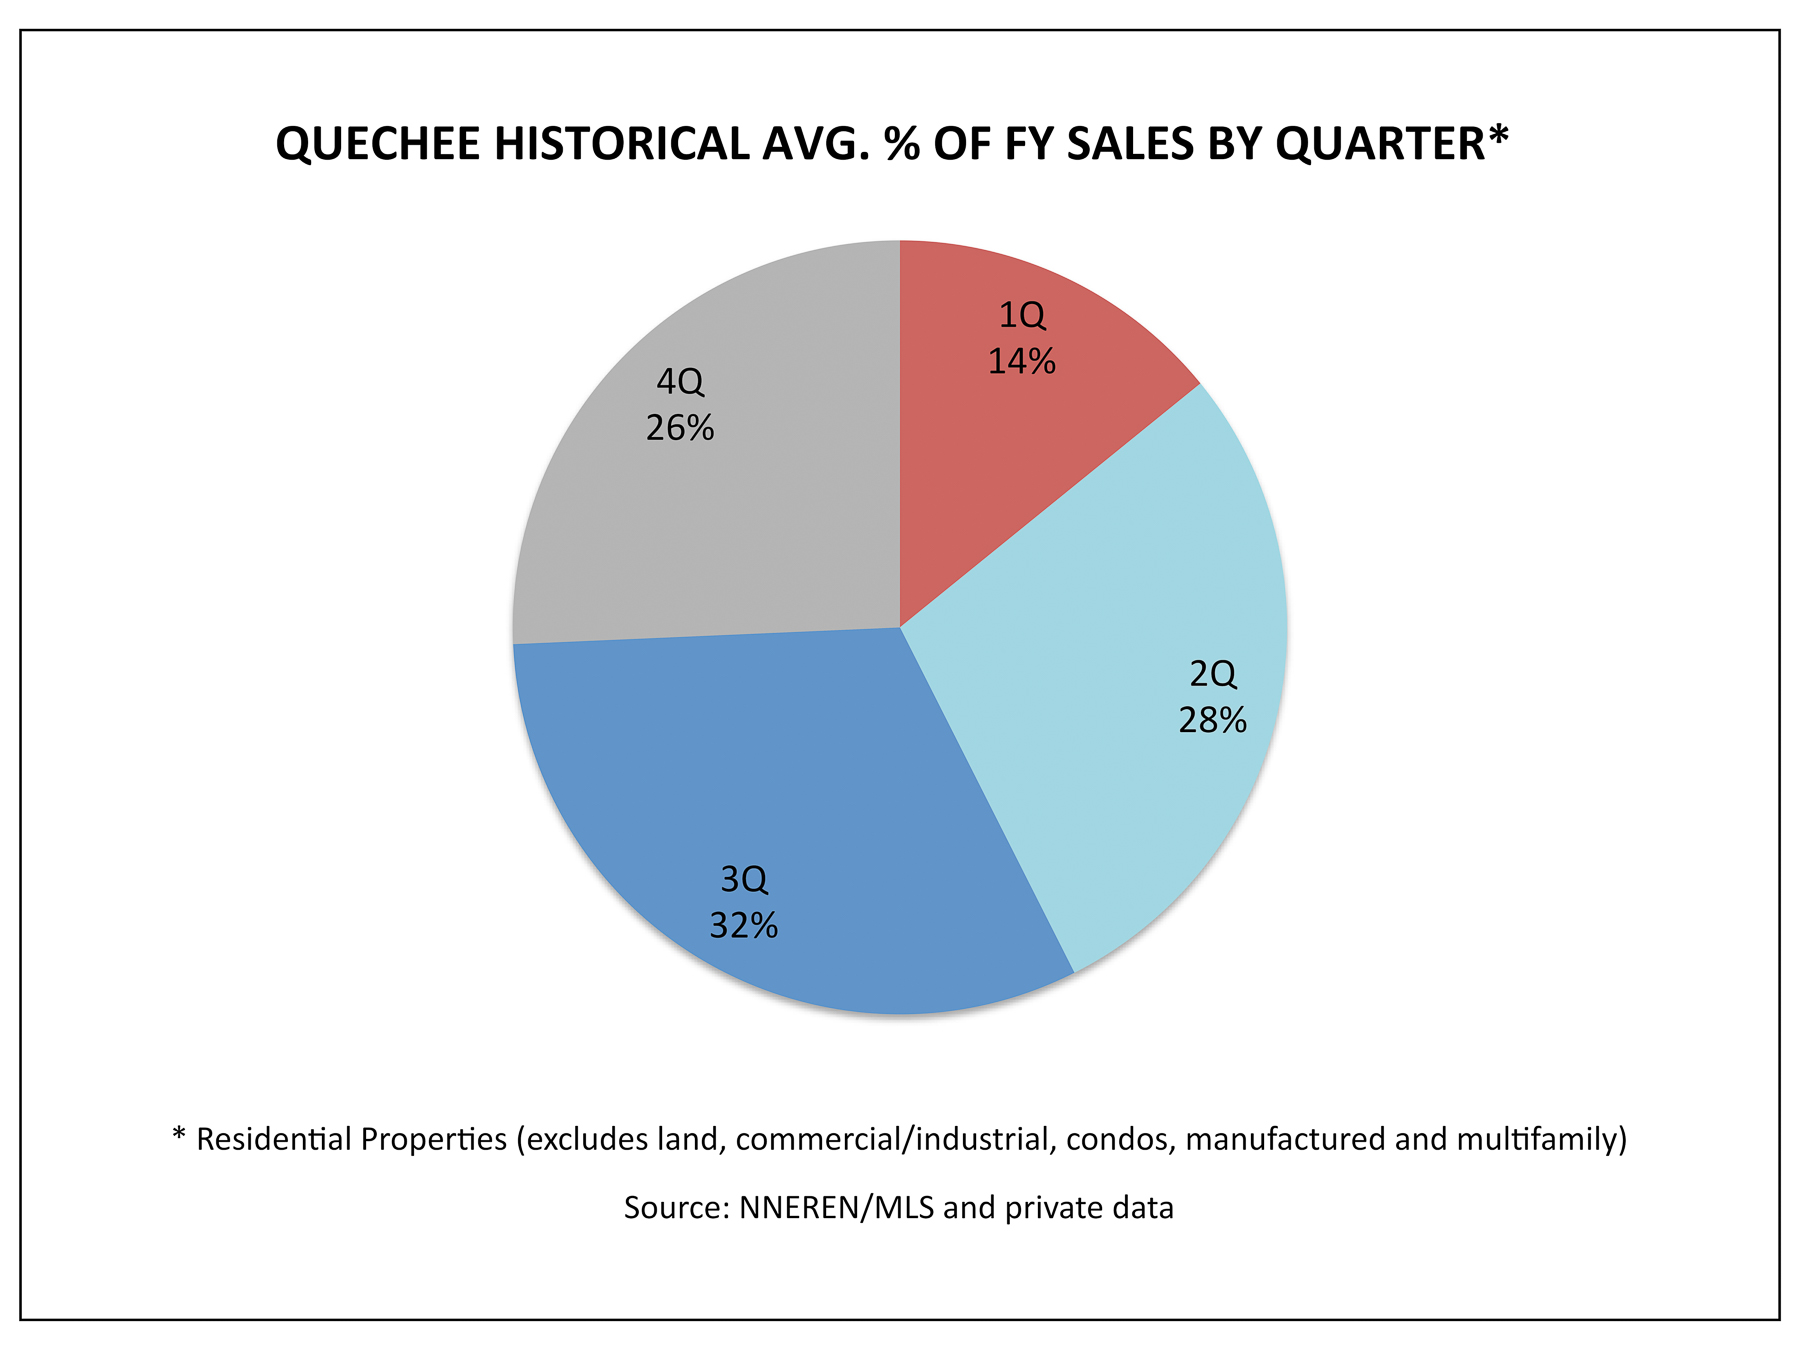 Quechee VT Real Estate - 1Q Historical Avg. % Homes Sold Per Quarter